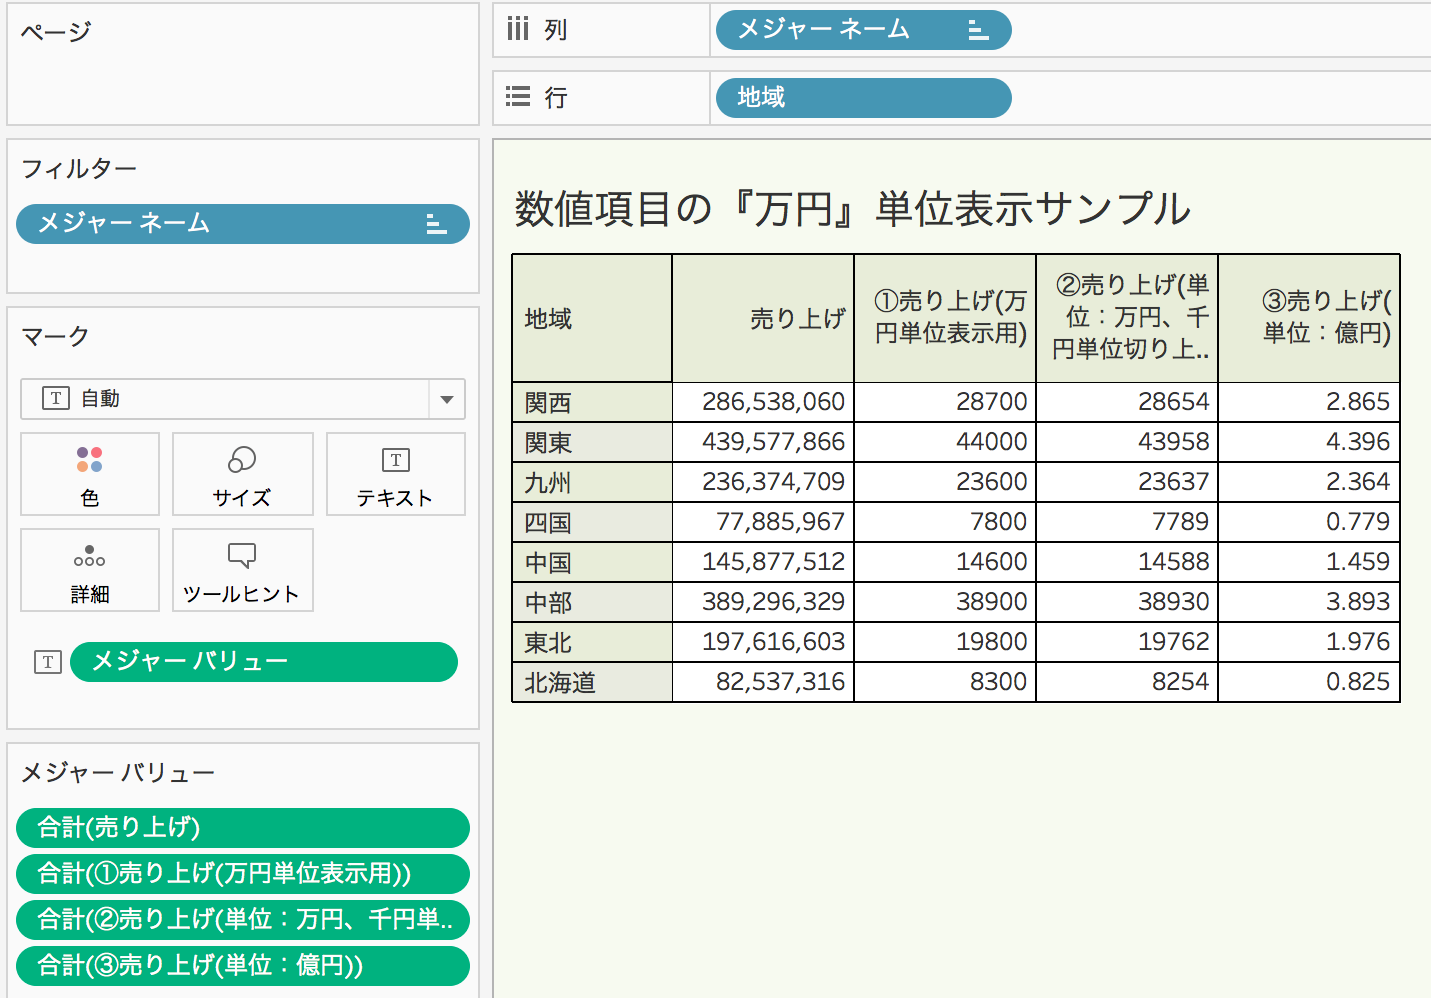 tableau-tips-formatting-japanese-style_12